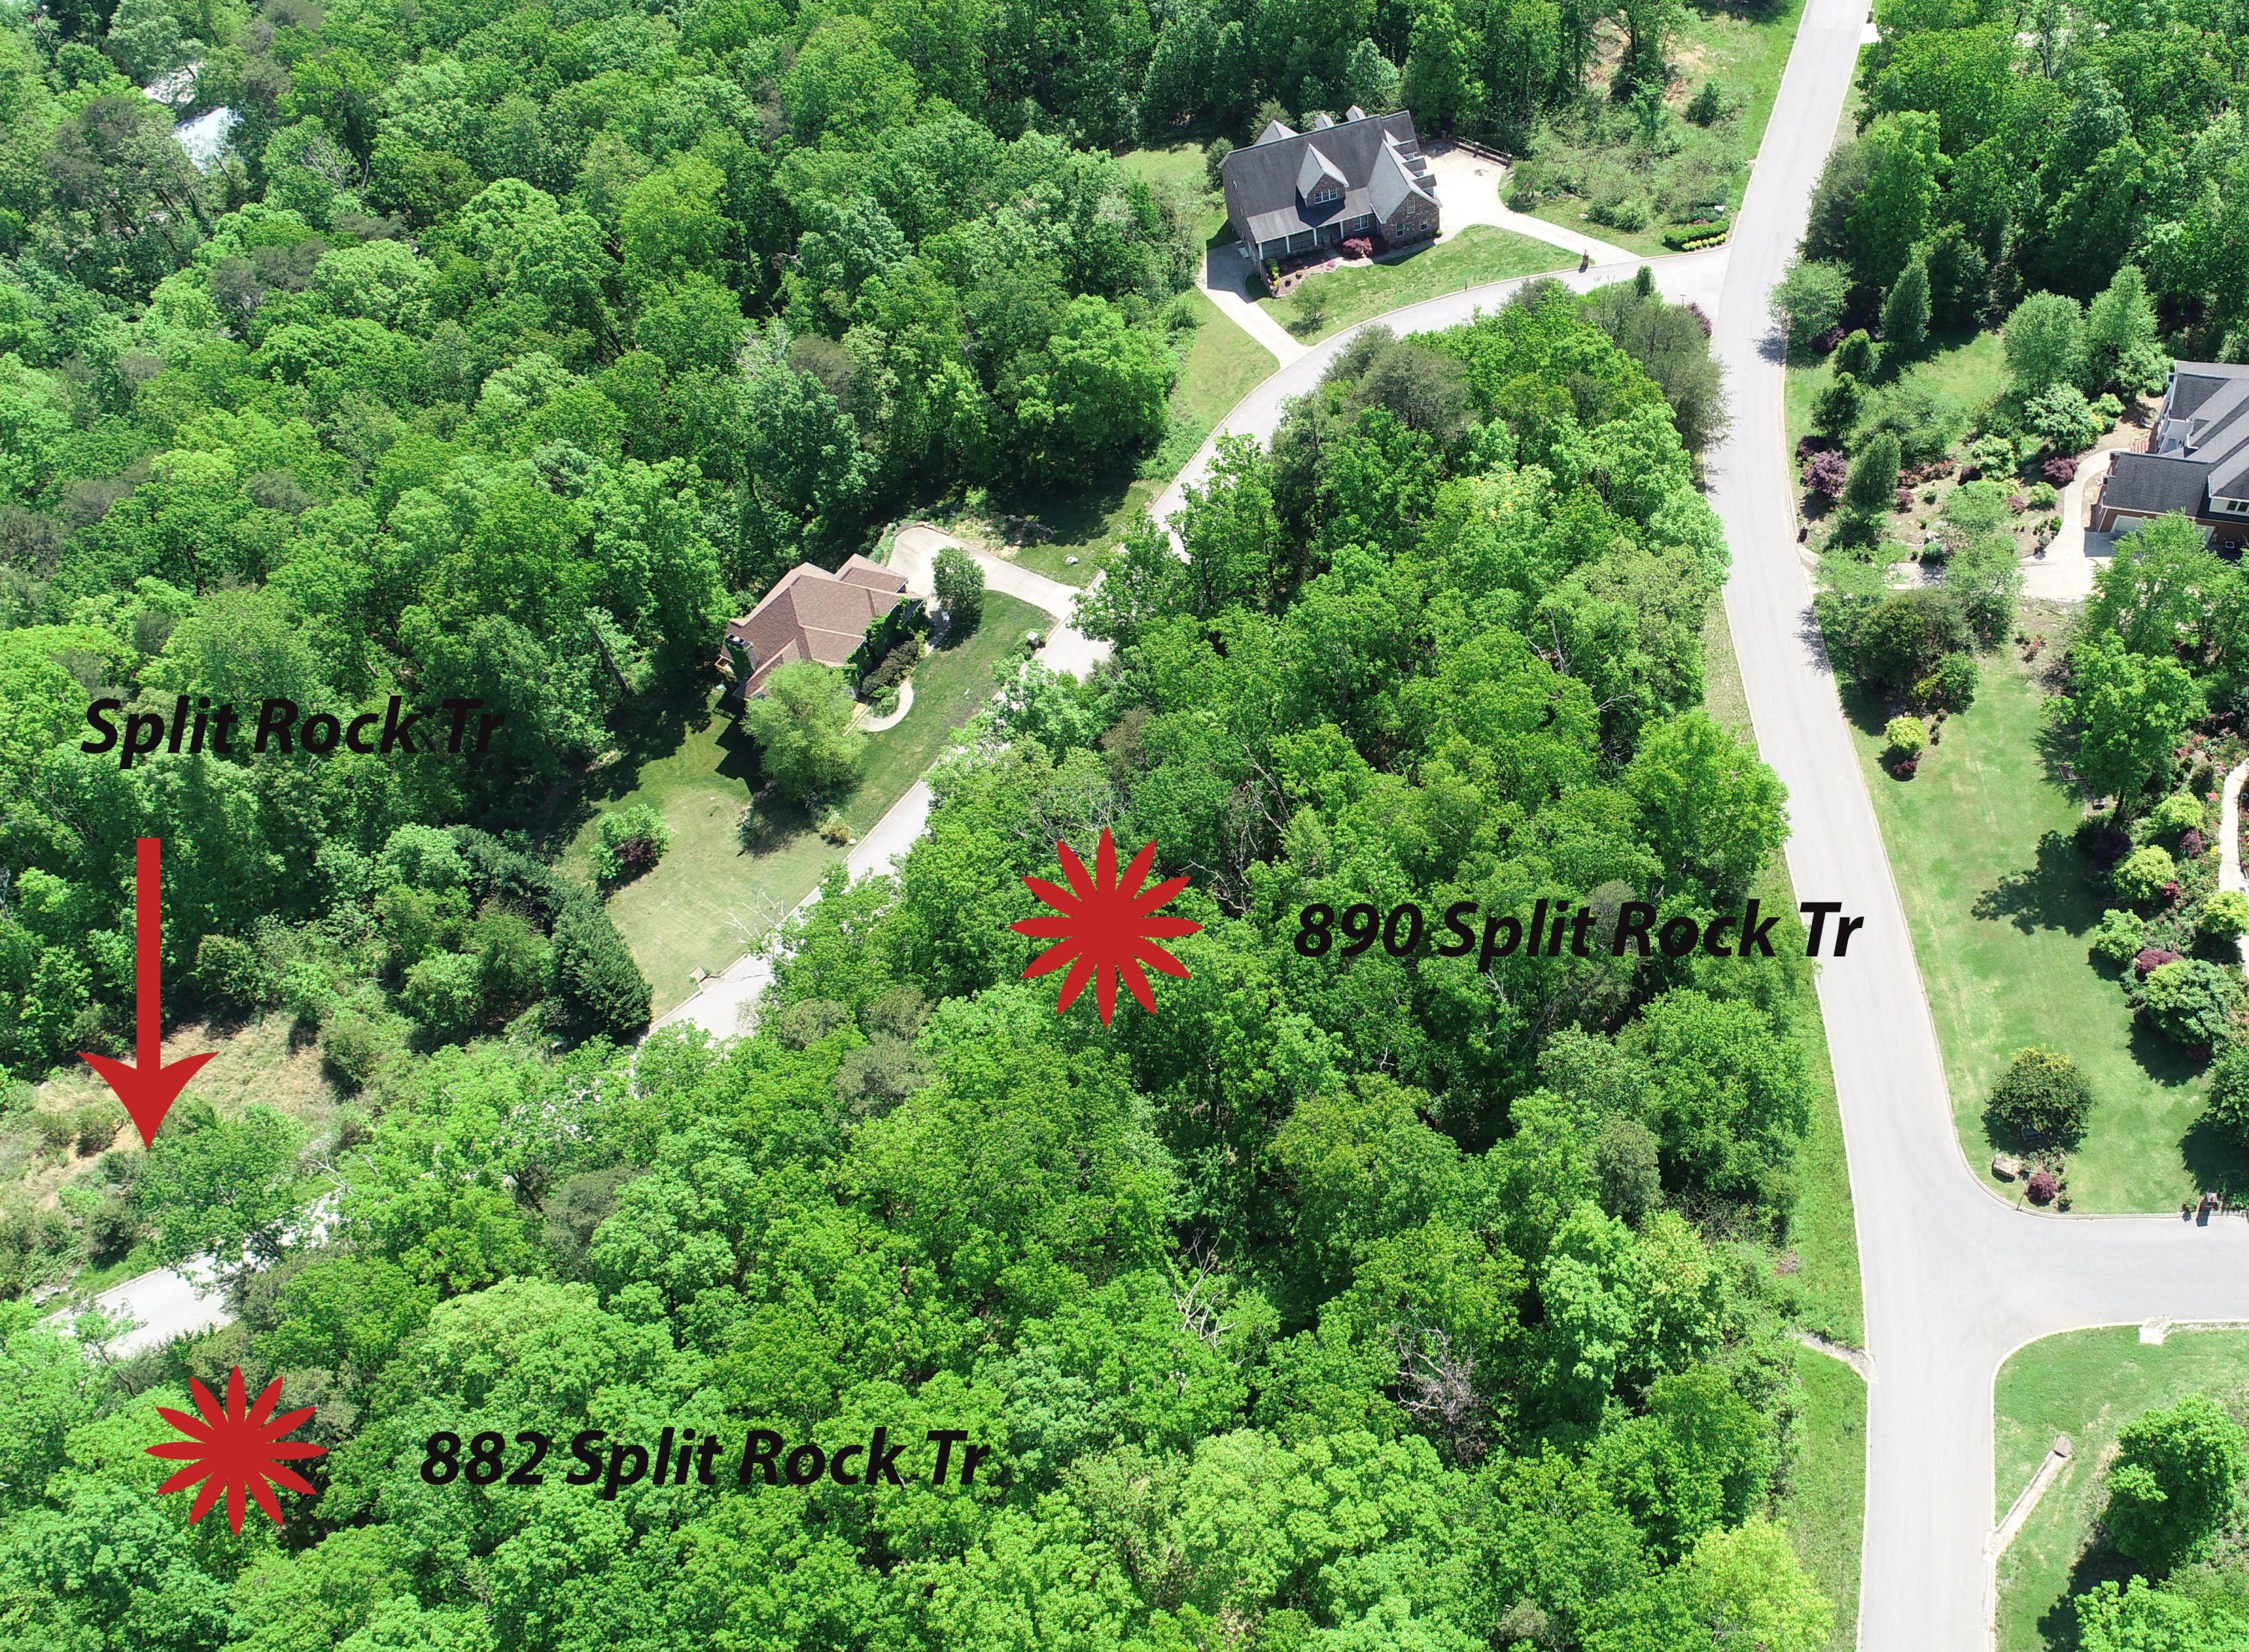 882 Split Rock Tr, Hixson, TN 37343